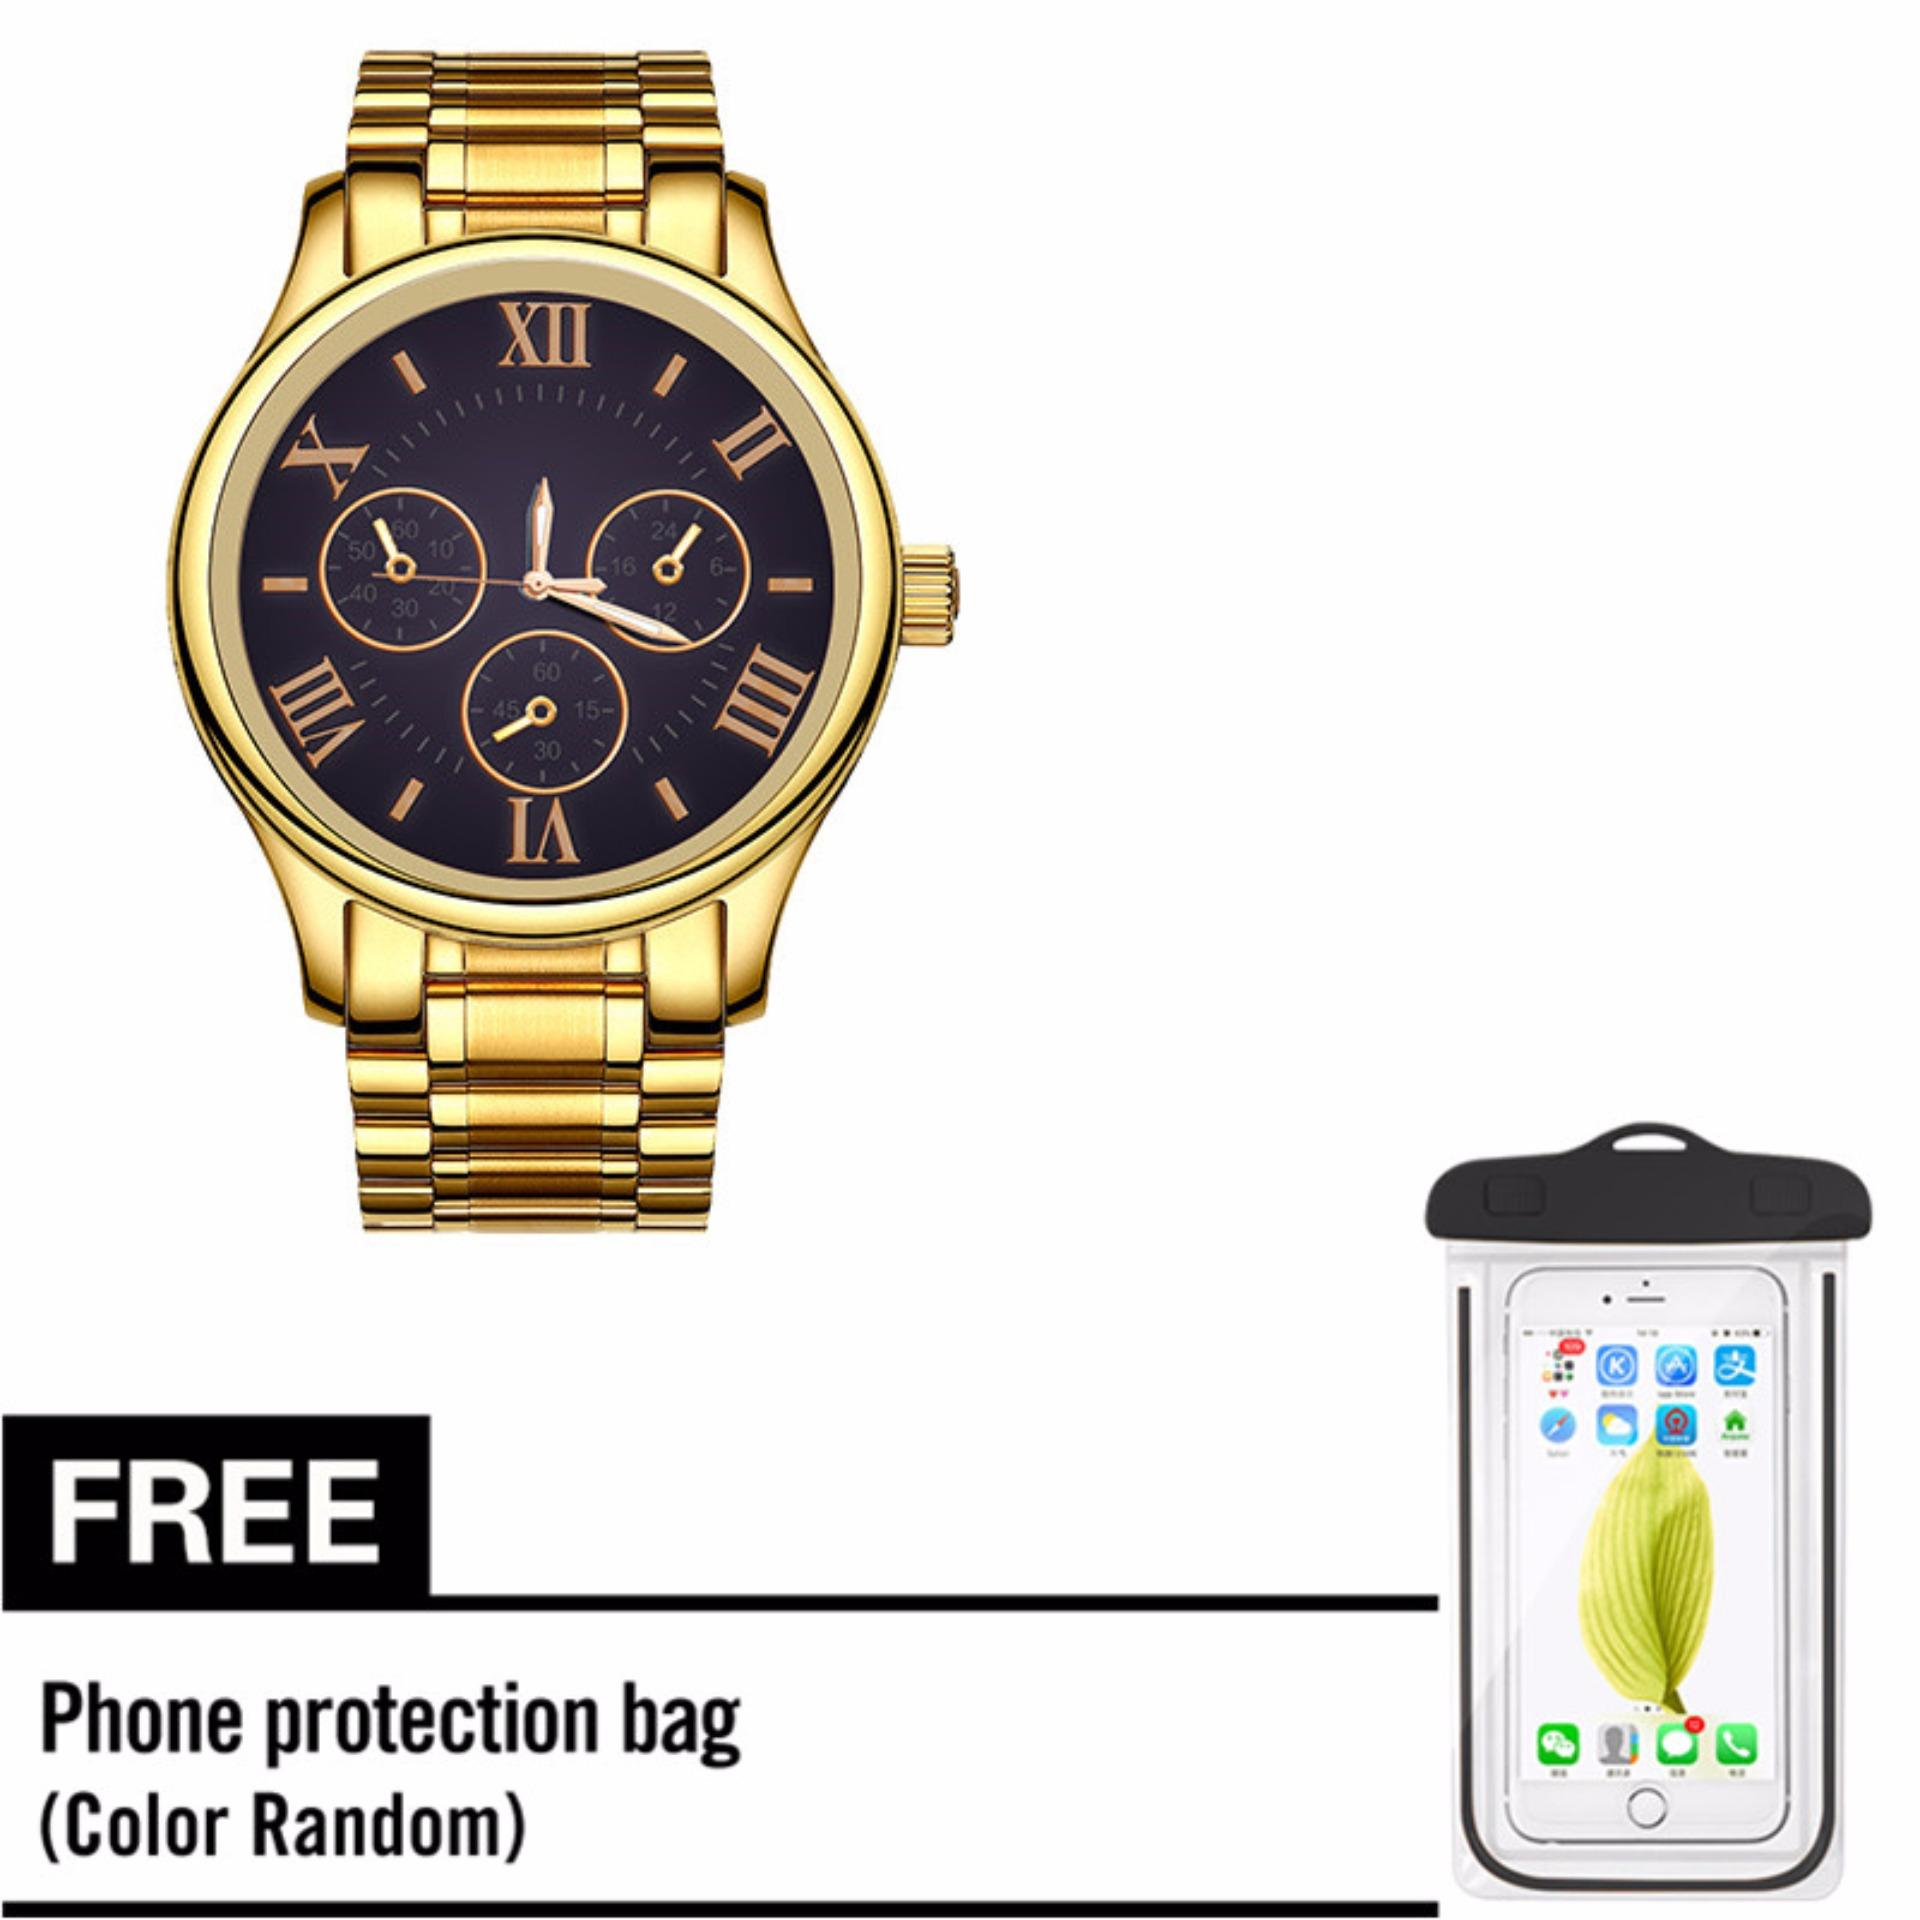 KingDo Men's Quartz Watch  with Free Smartphone Waterproof Case